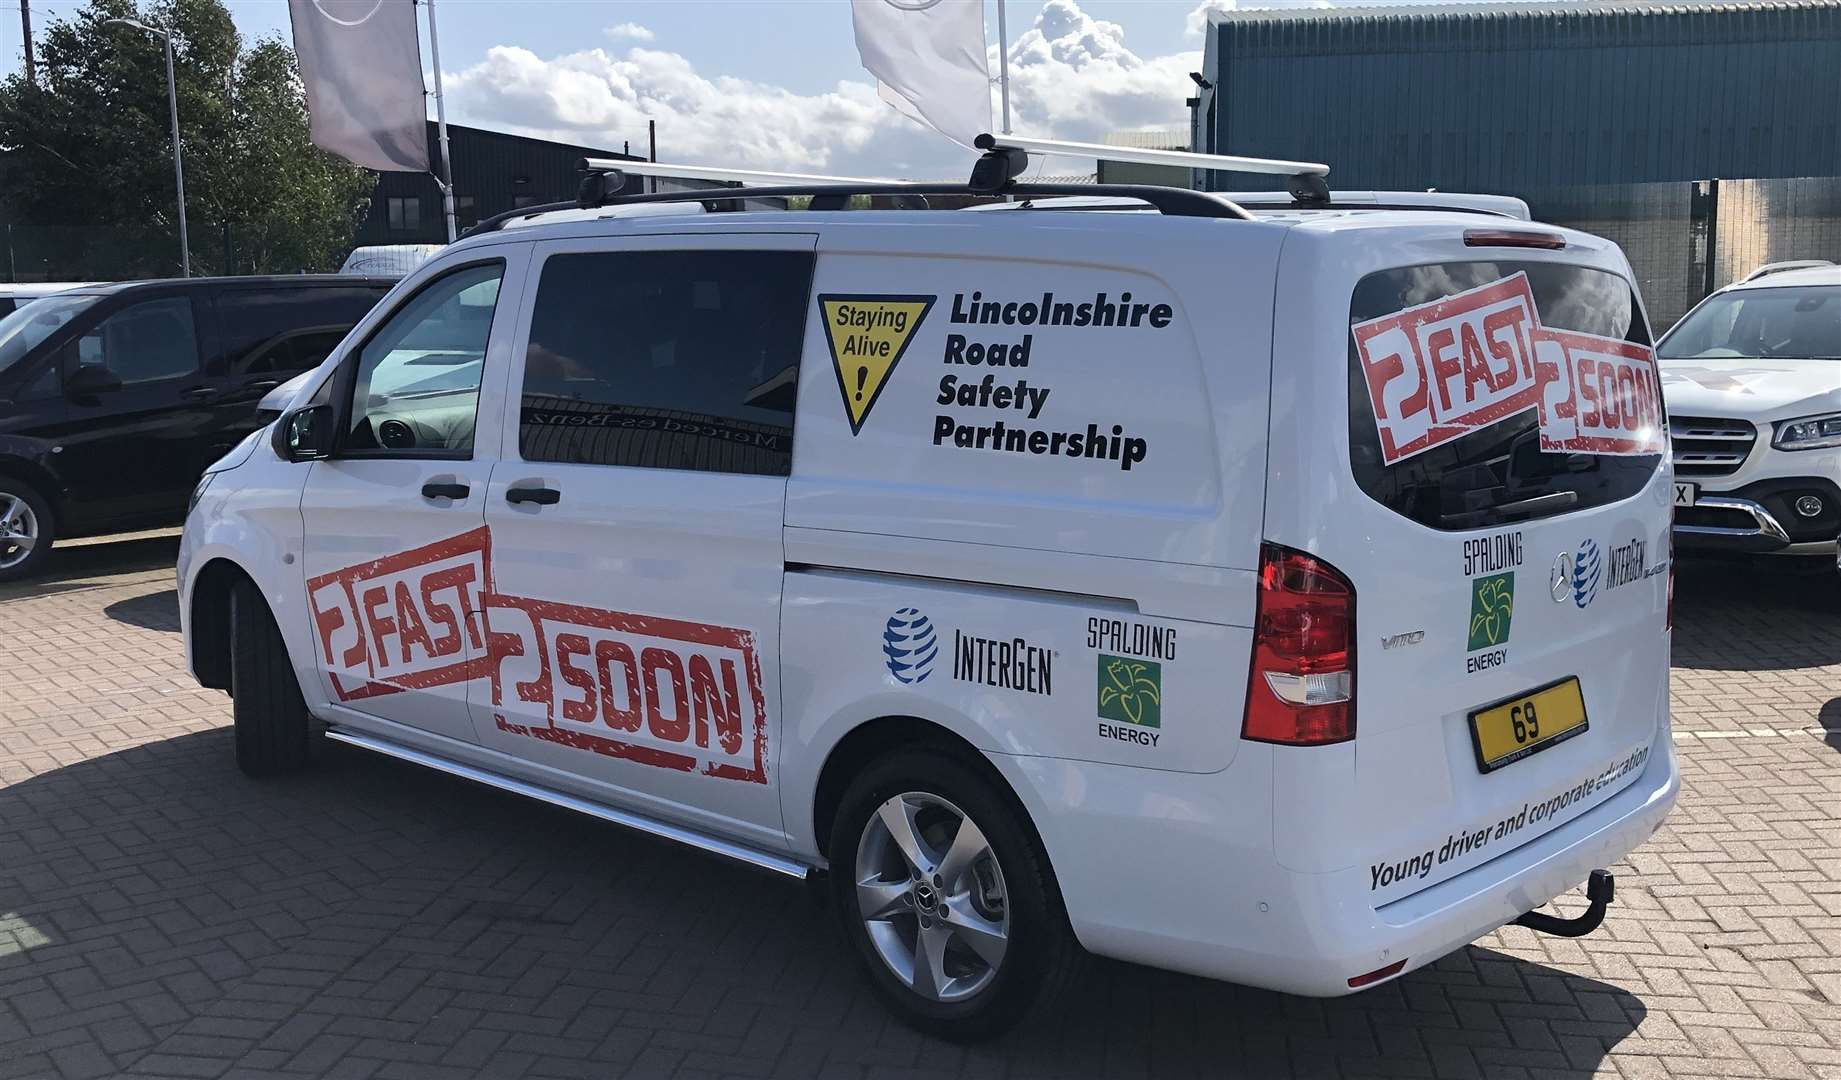 The new van provided by Intergen, owners of Spalding Power Station, for the 2fast2soon driver safety campaign run by Linolnshire Road Safety Partnership.Photo supplied.